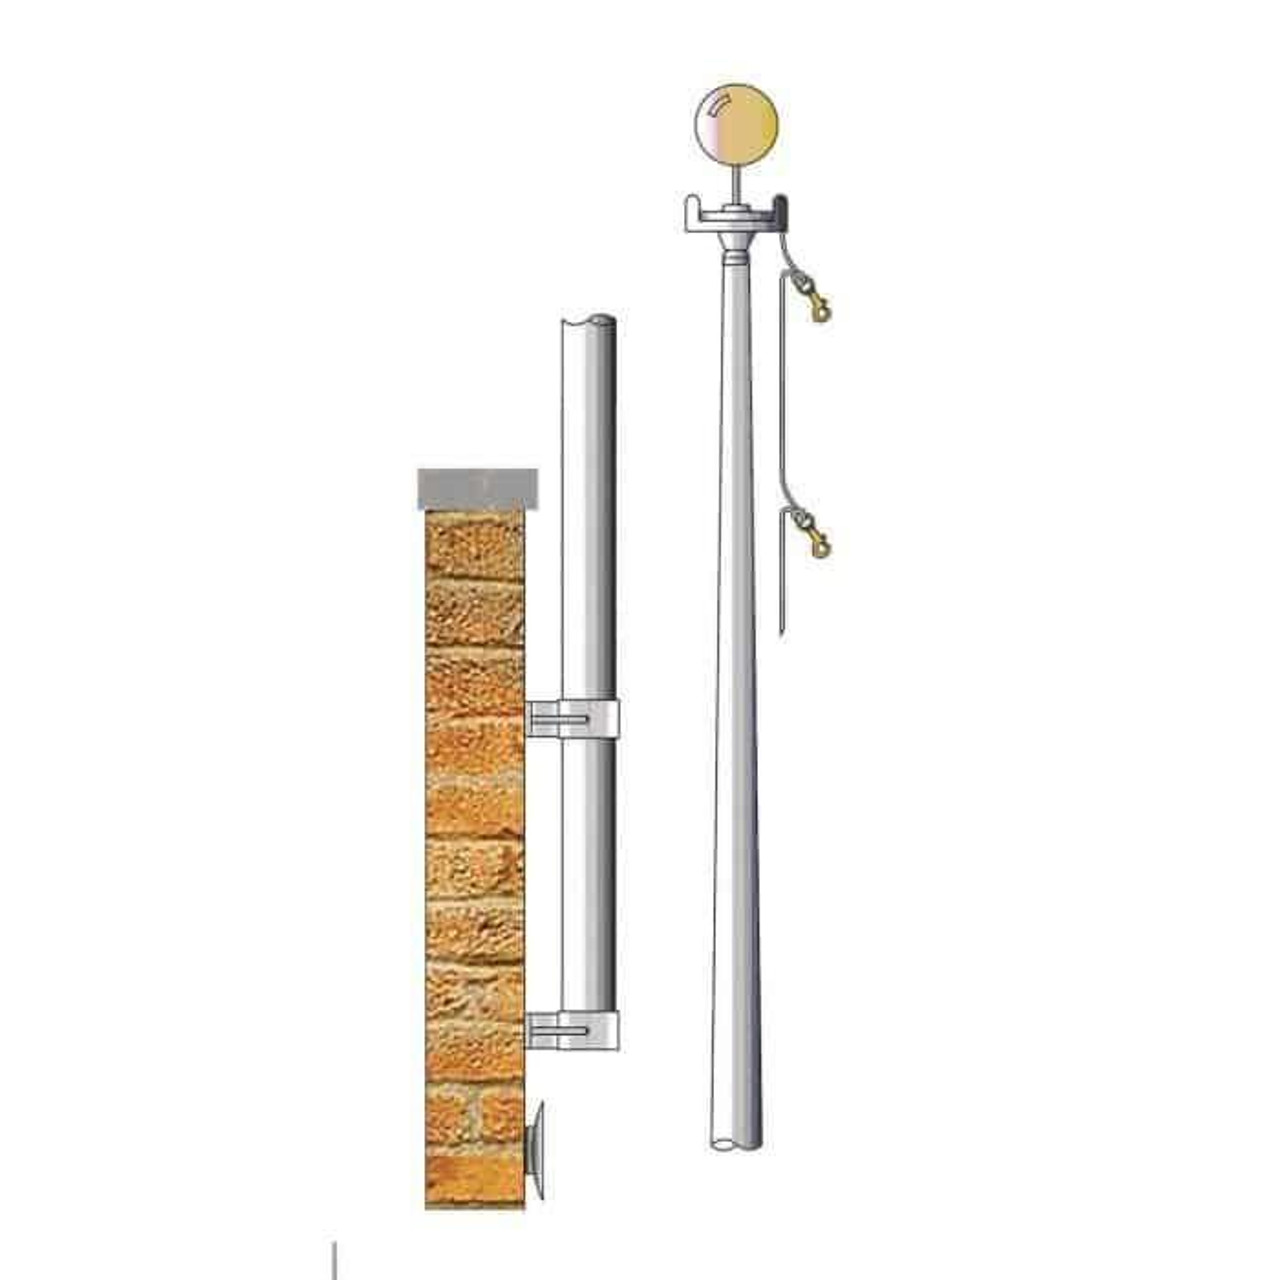 20 Vertical Wall Mounted Flagpole EVWS20